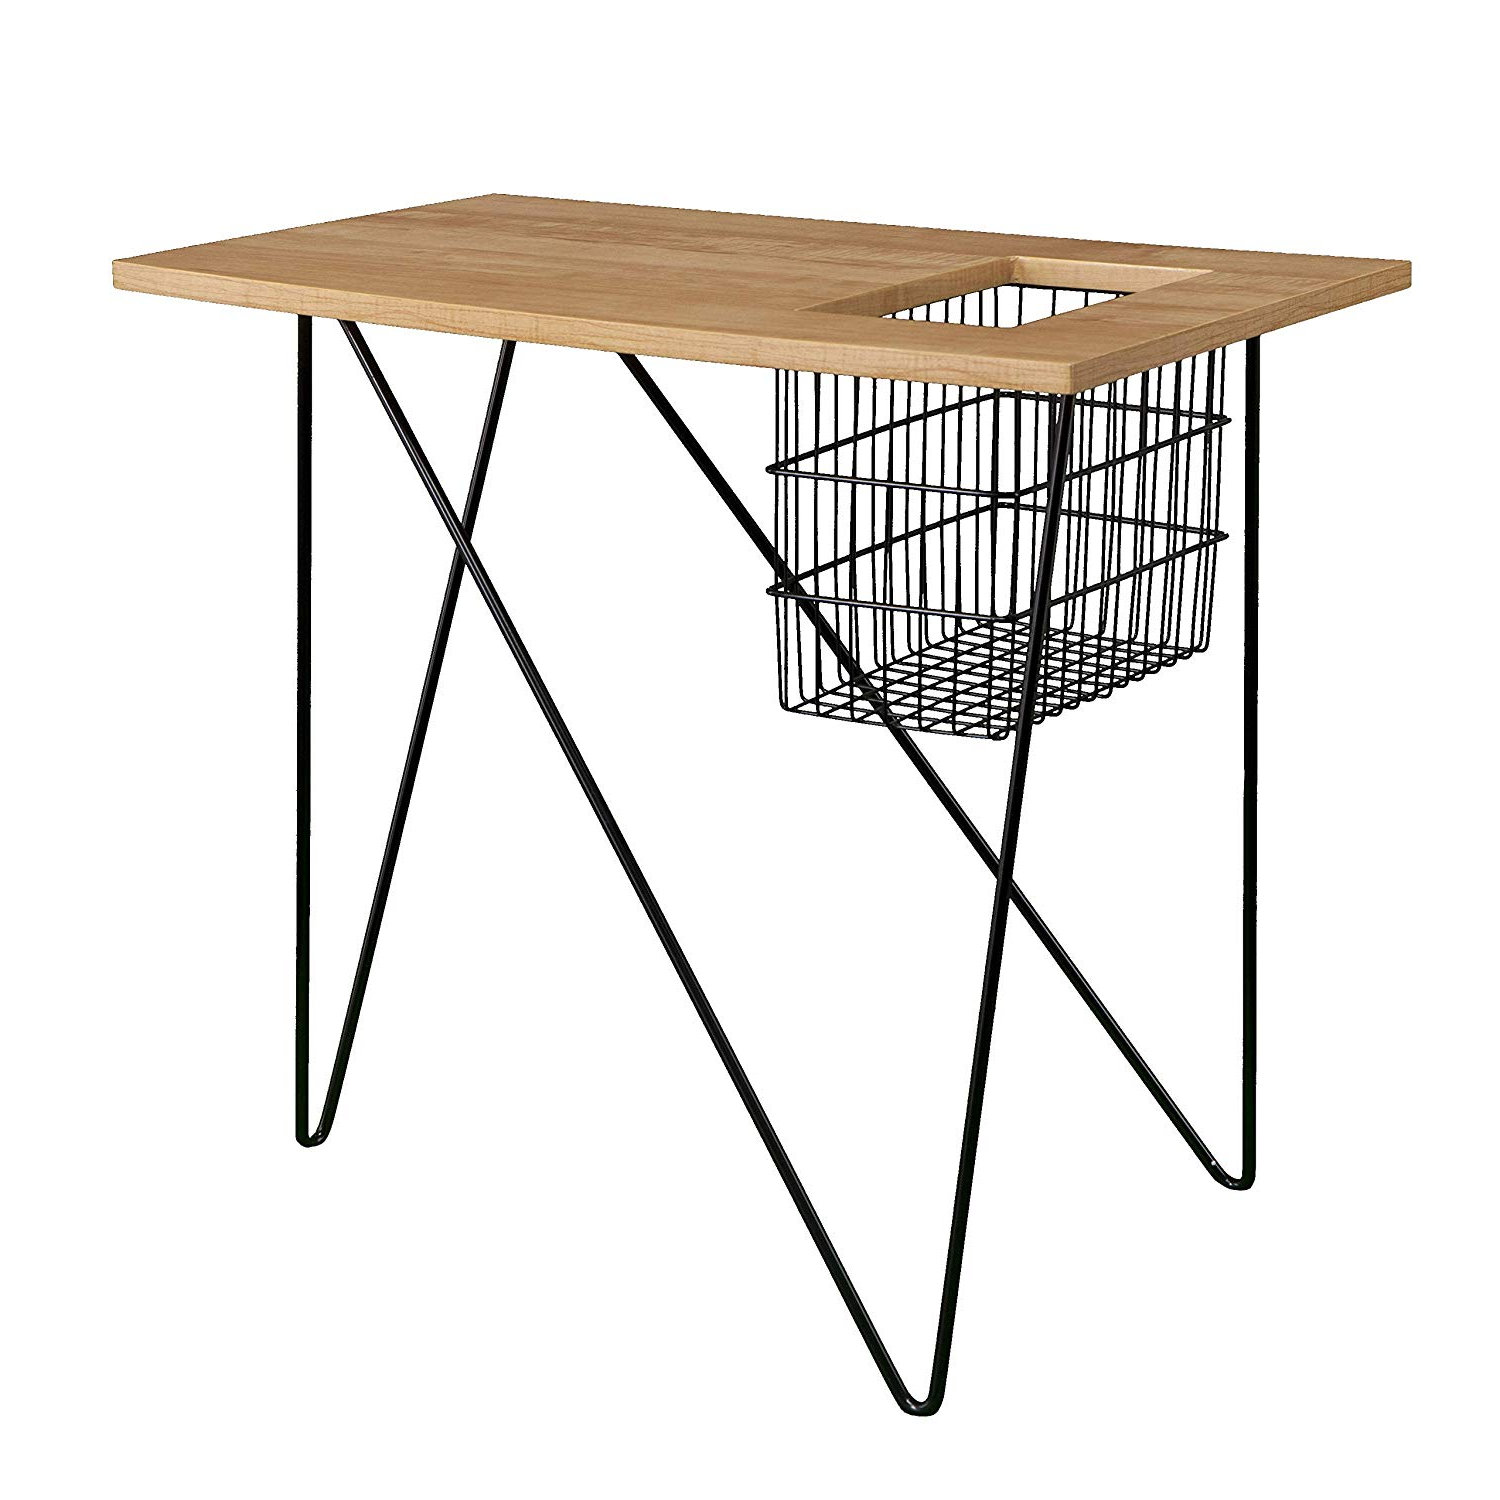 Most Popular Acacia Dining Tables With Black Rocket Legs Pertaining To Amazon: Southern Enterprises Amz6312co Nyda End Table (Gallery 11 of 30)